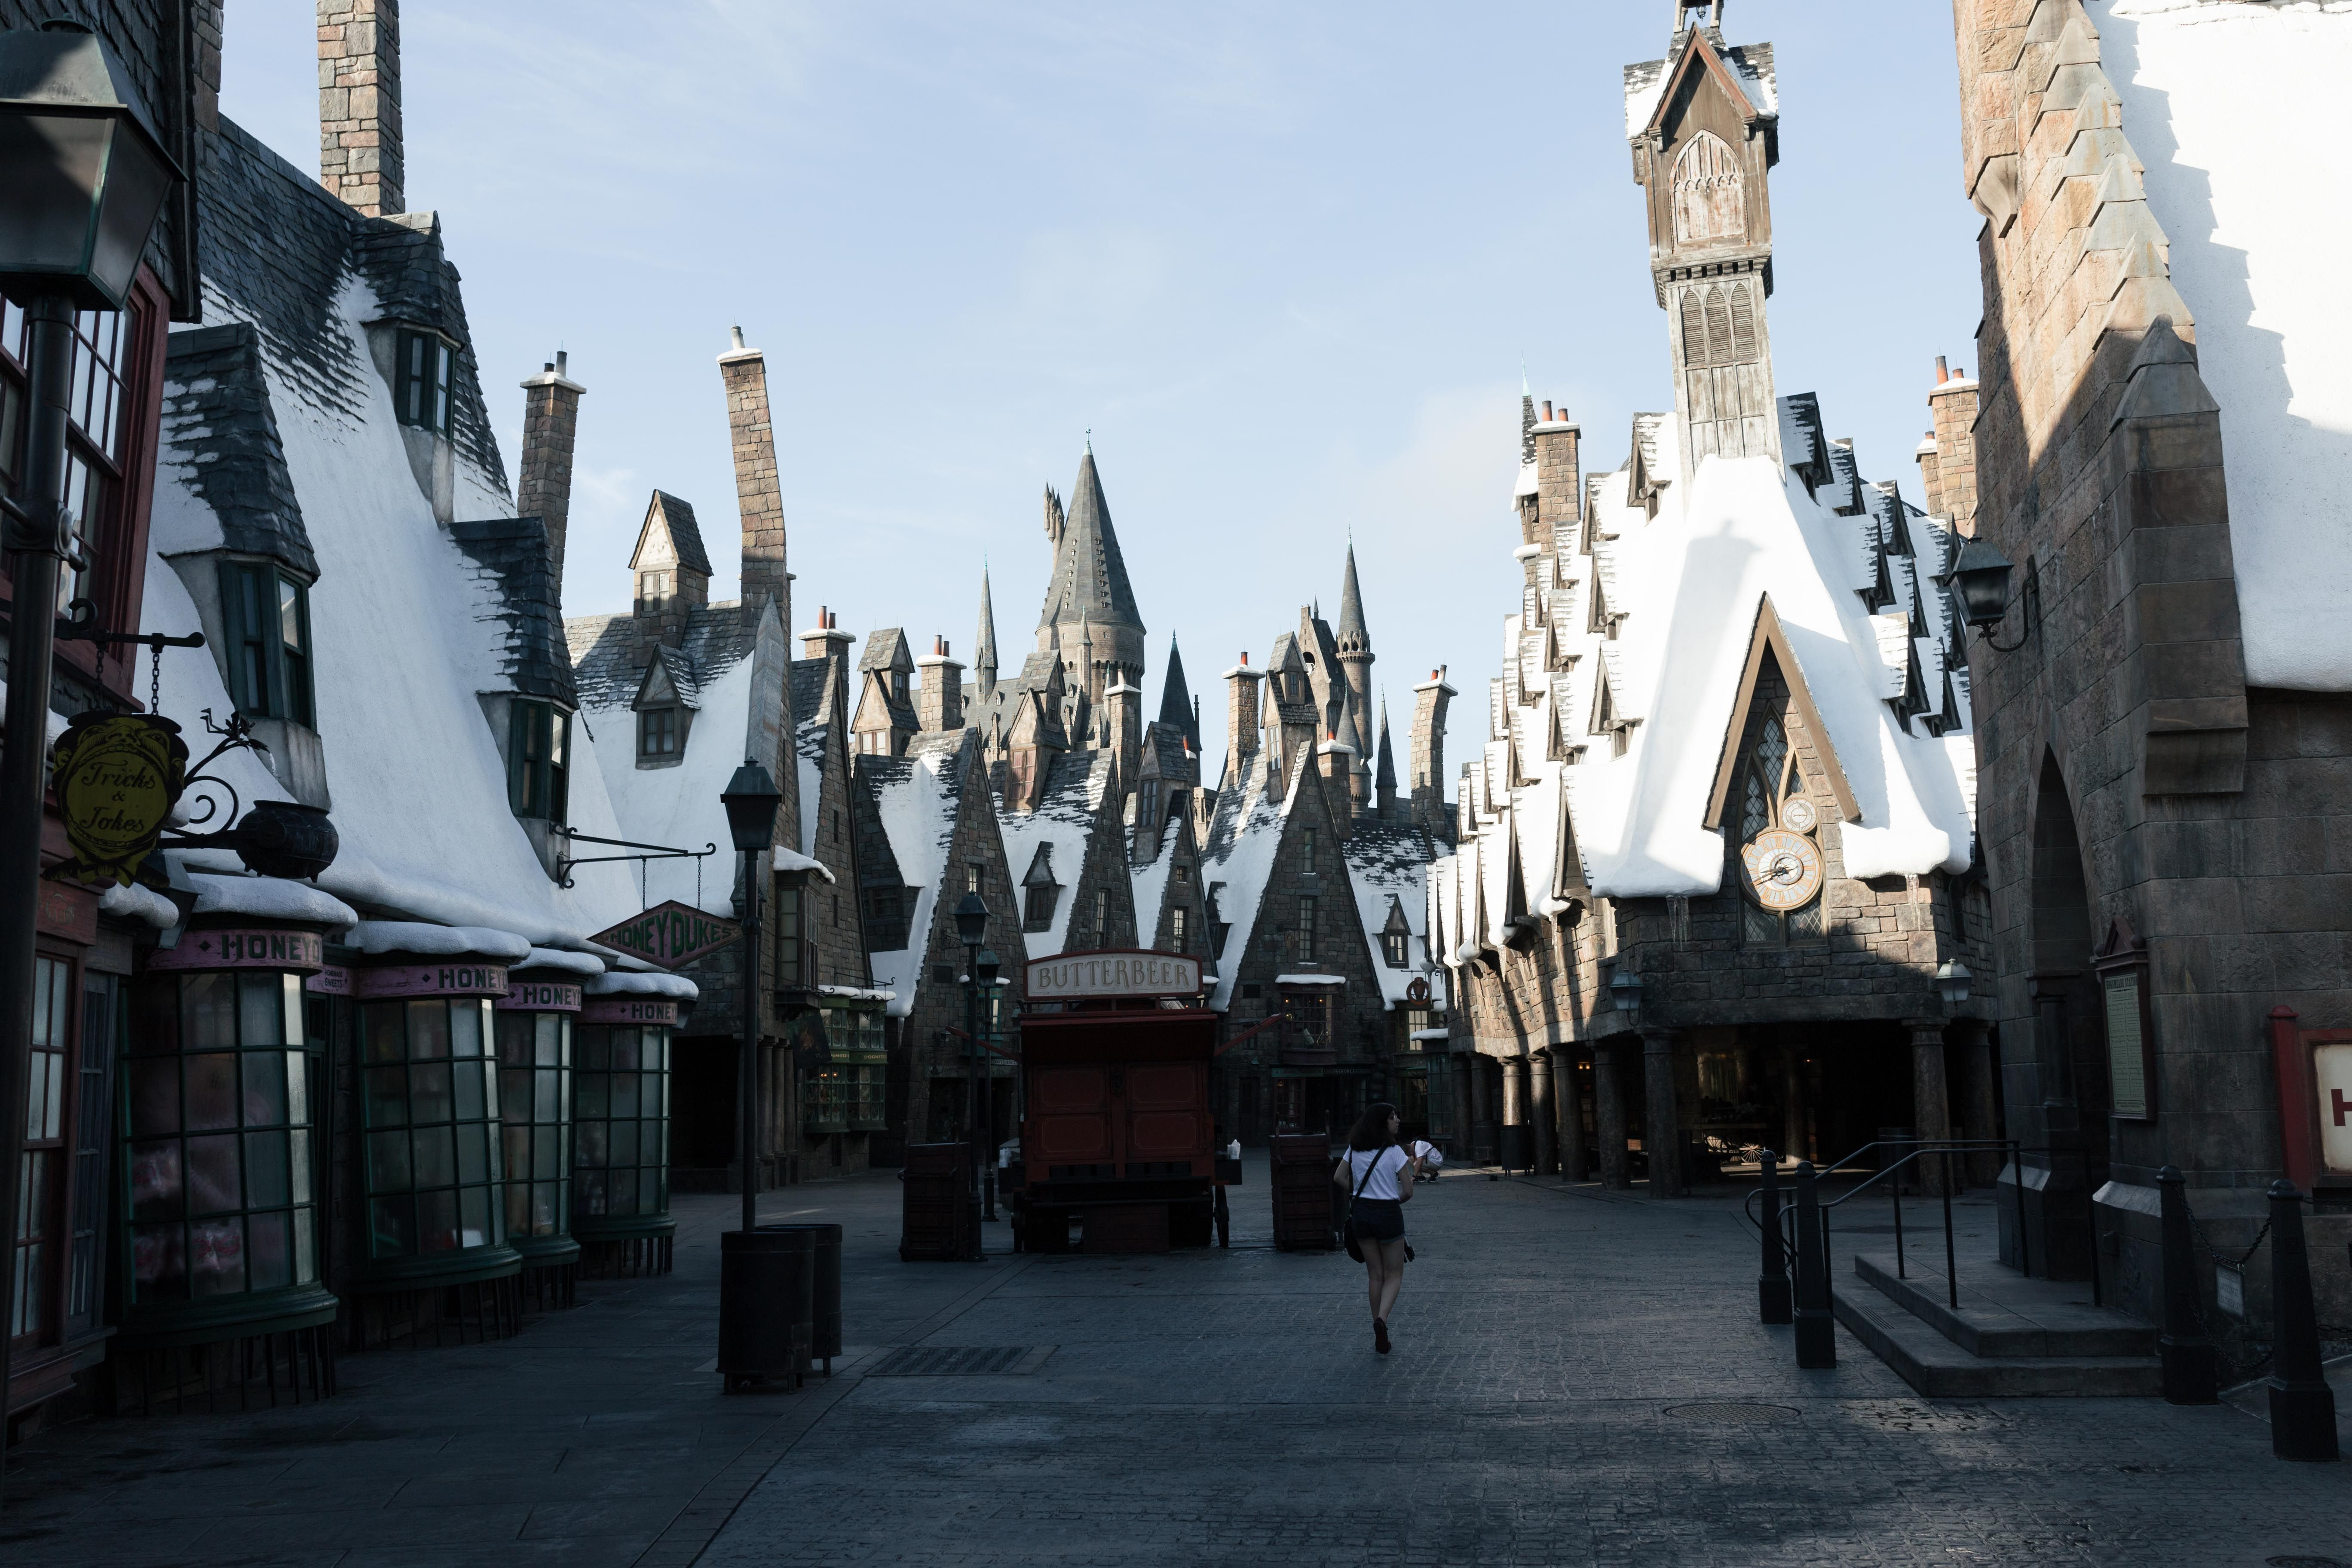 The Wizarding World of Harry Potter Hogsmeade